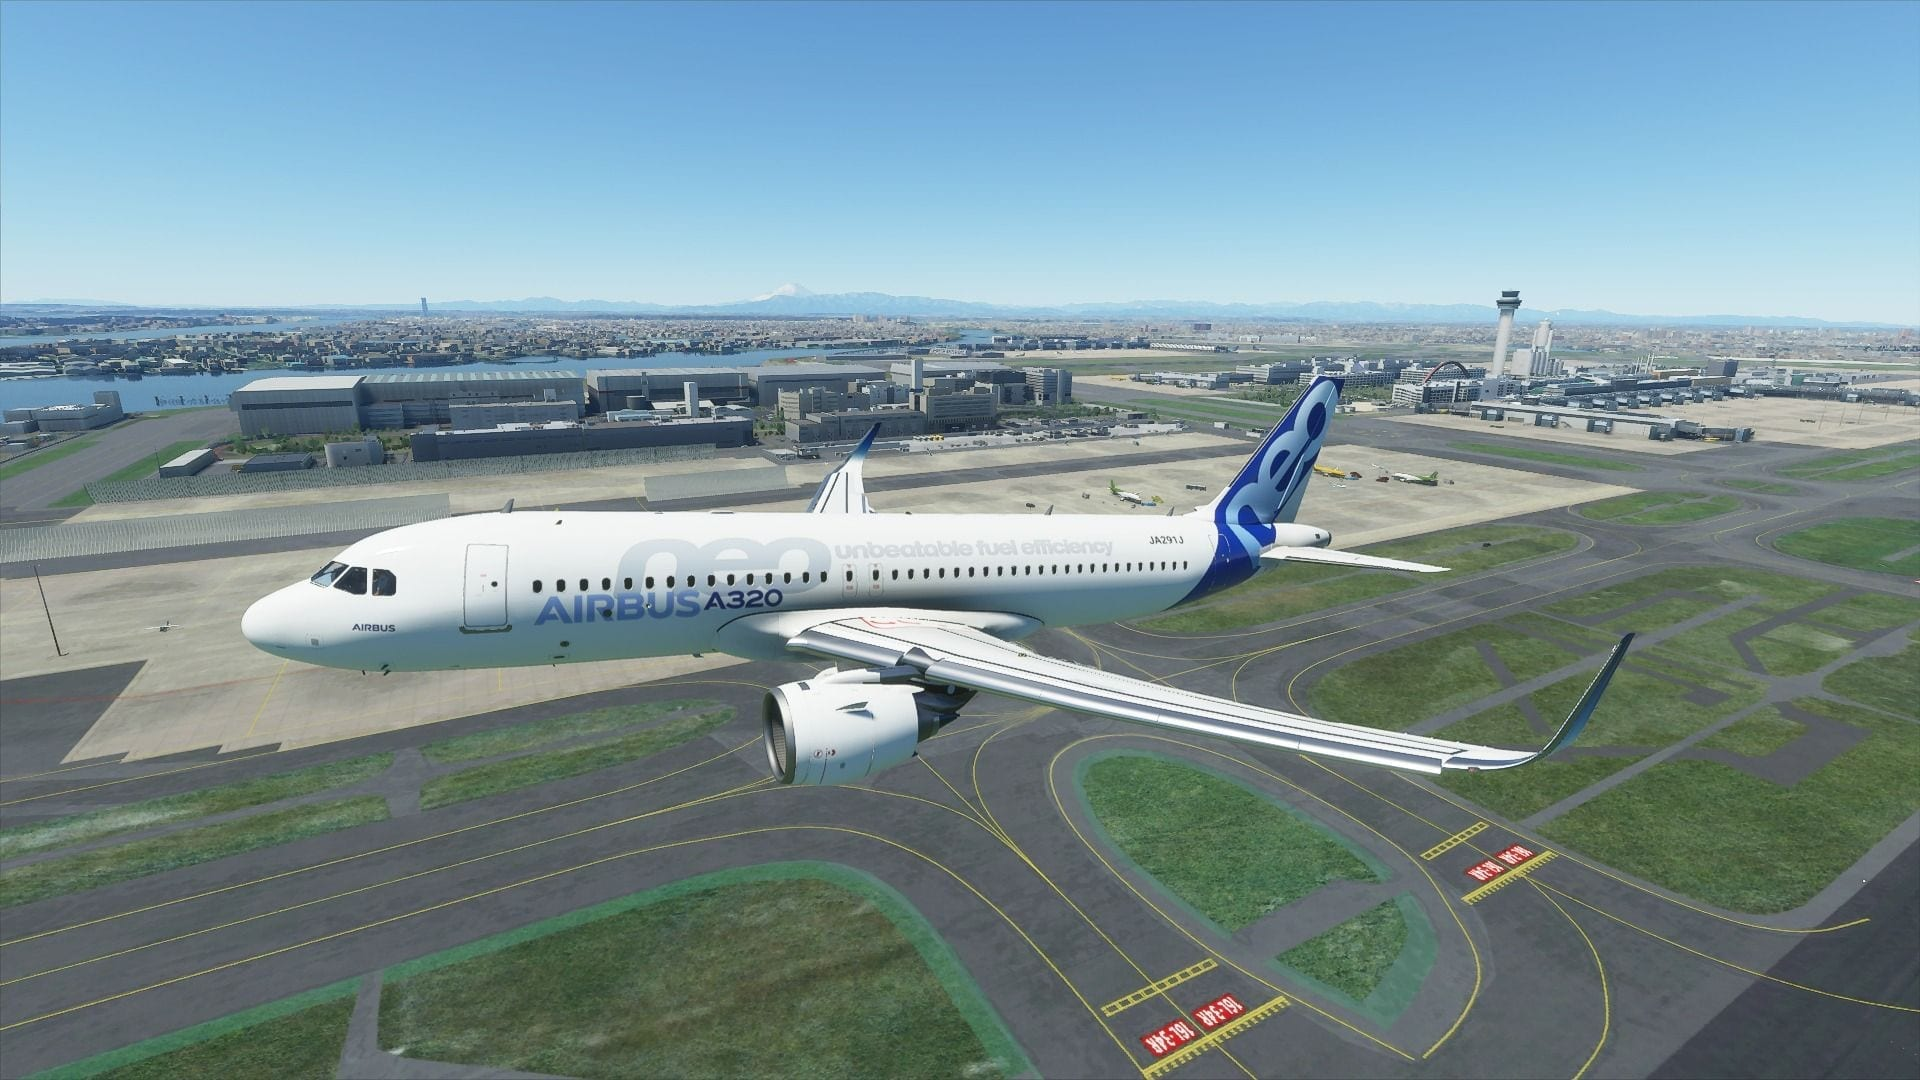 microsoft flight simulator, open world